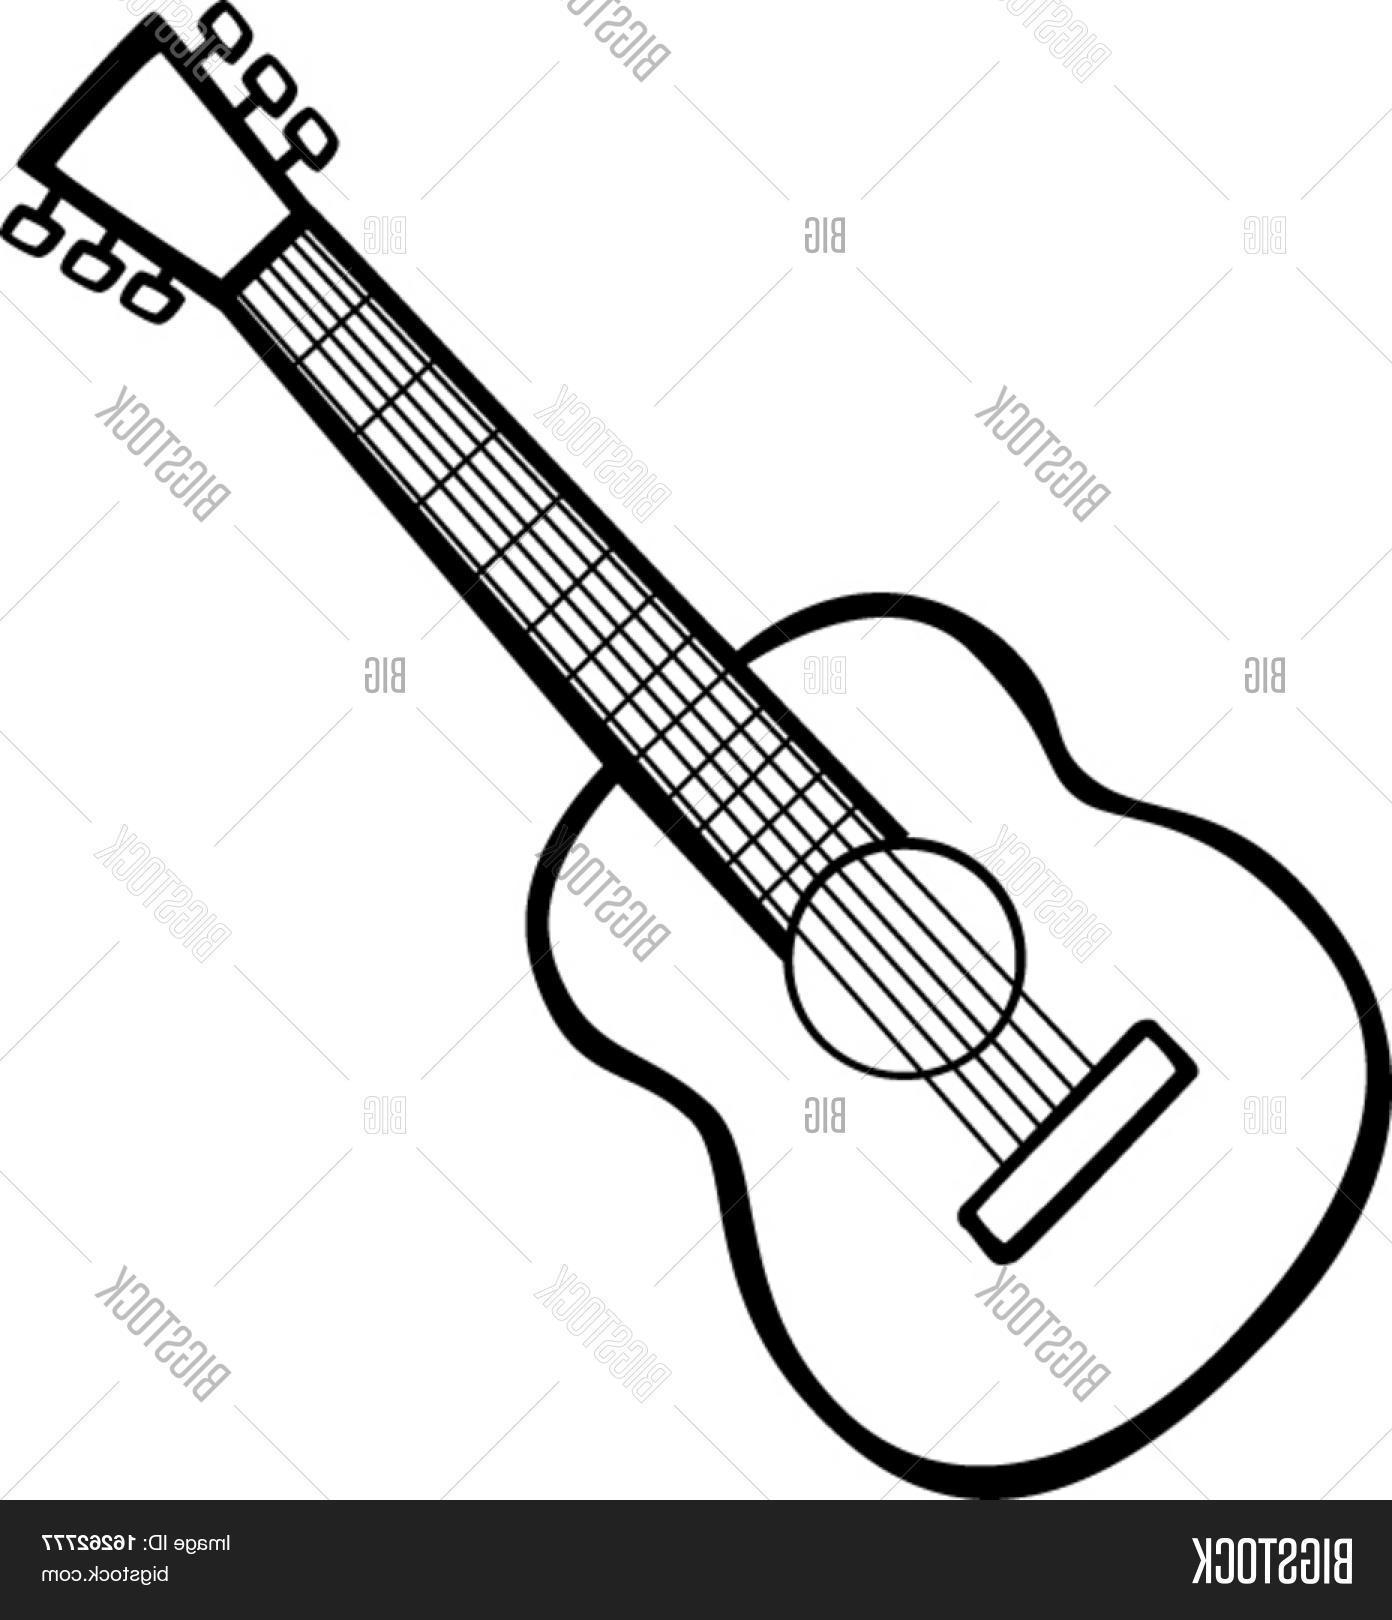 Glade Ict 25 Best Looking For Guitar Drawing Cartoon